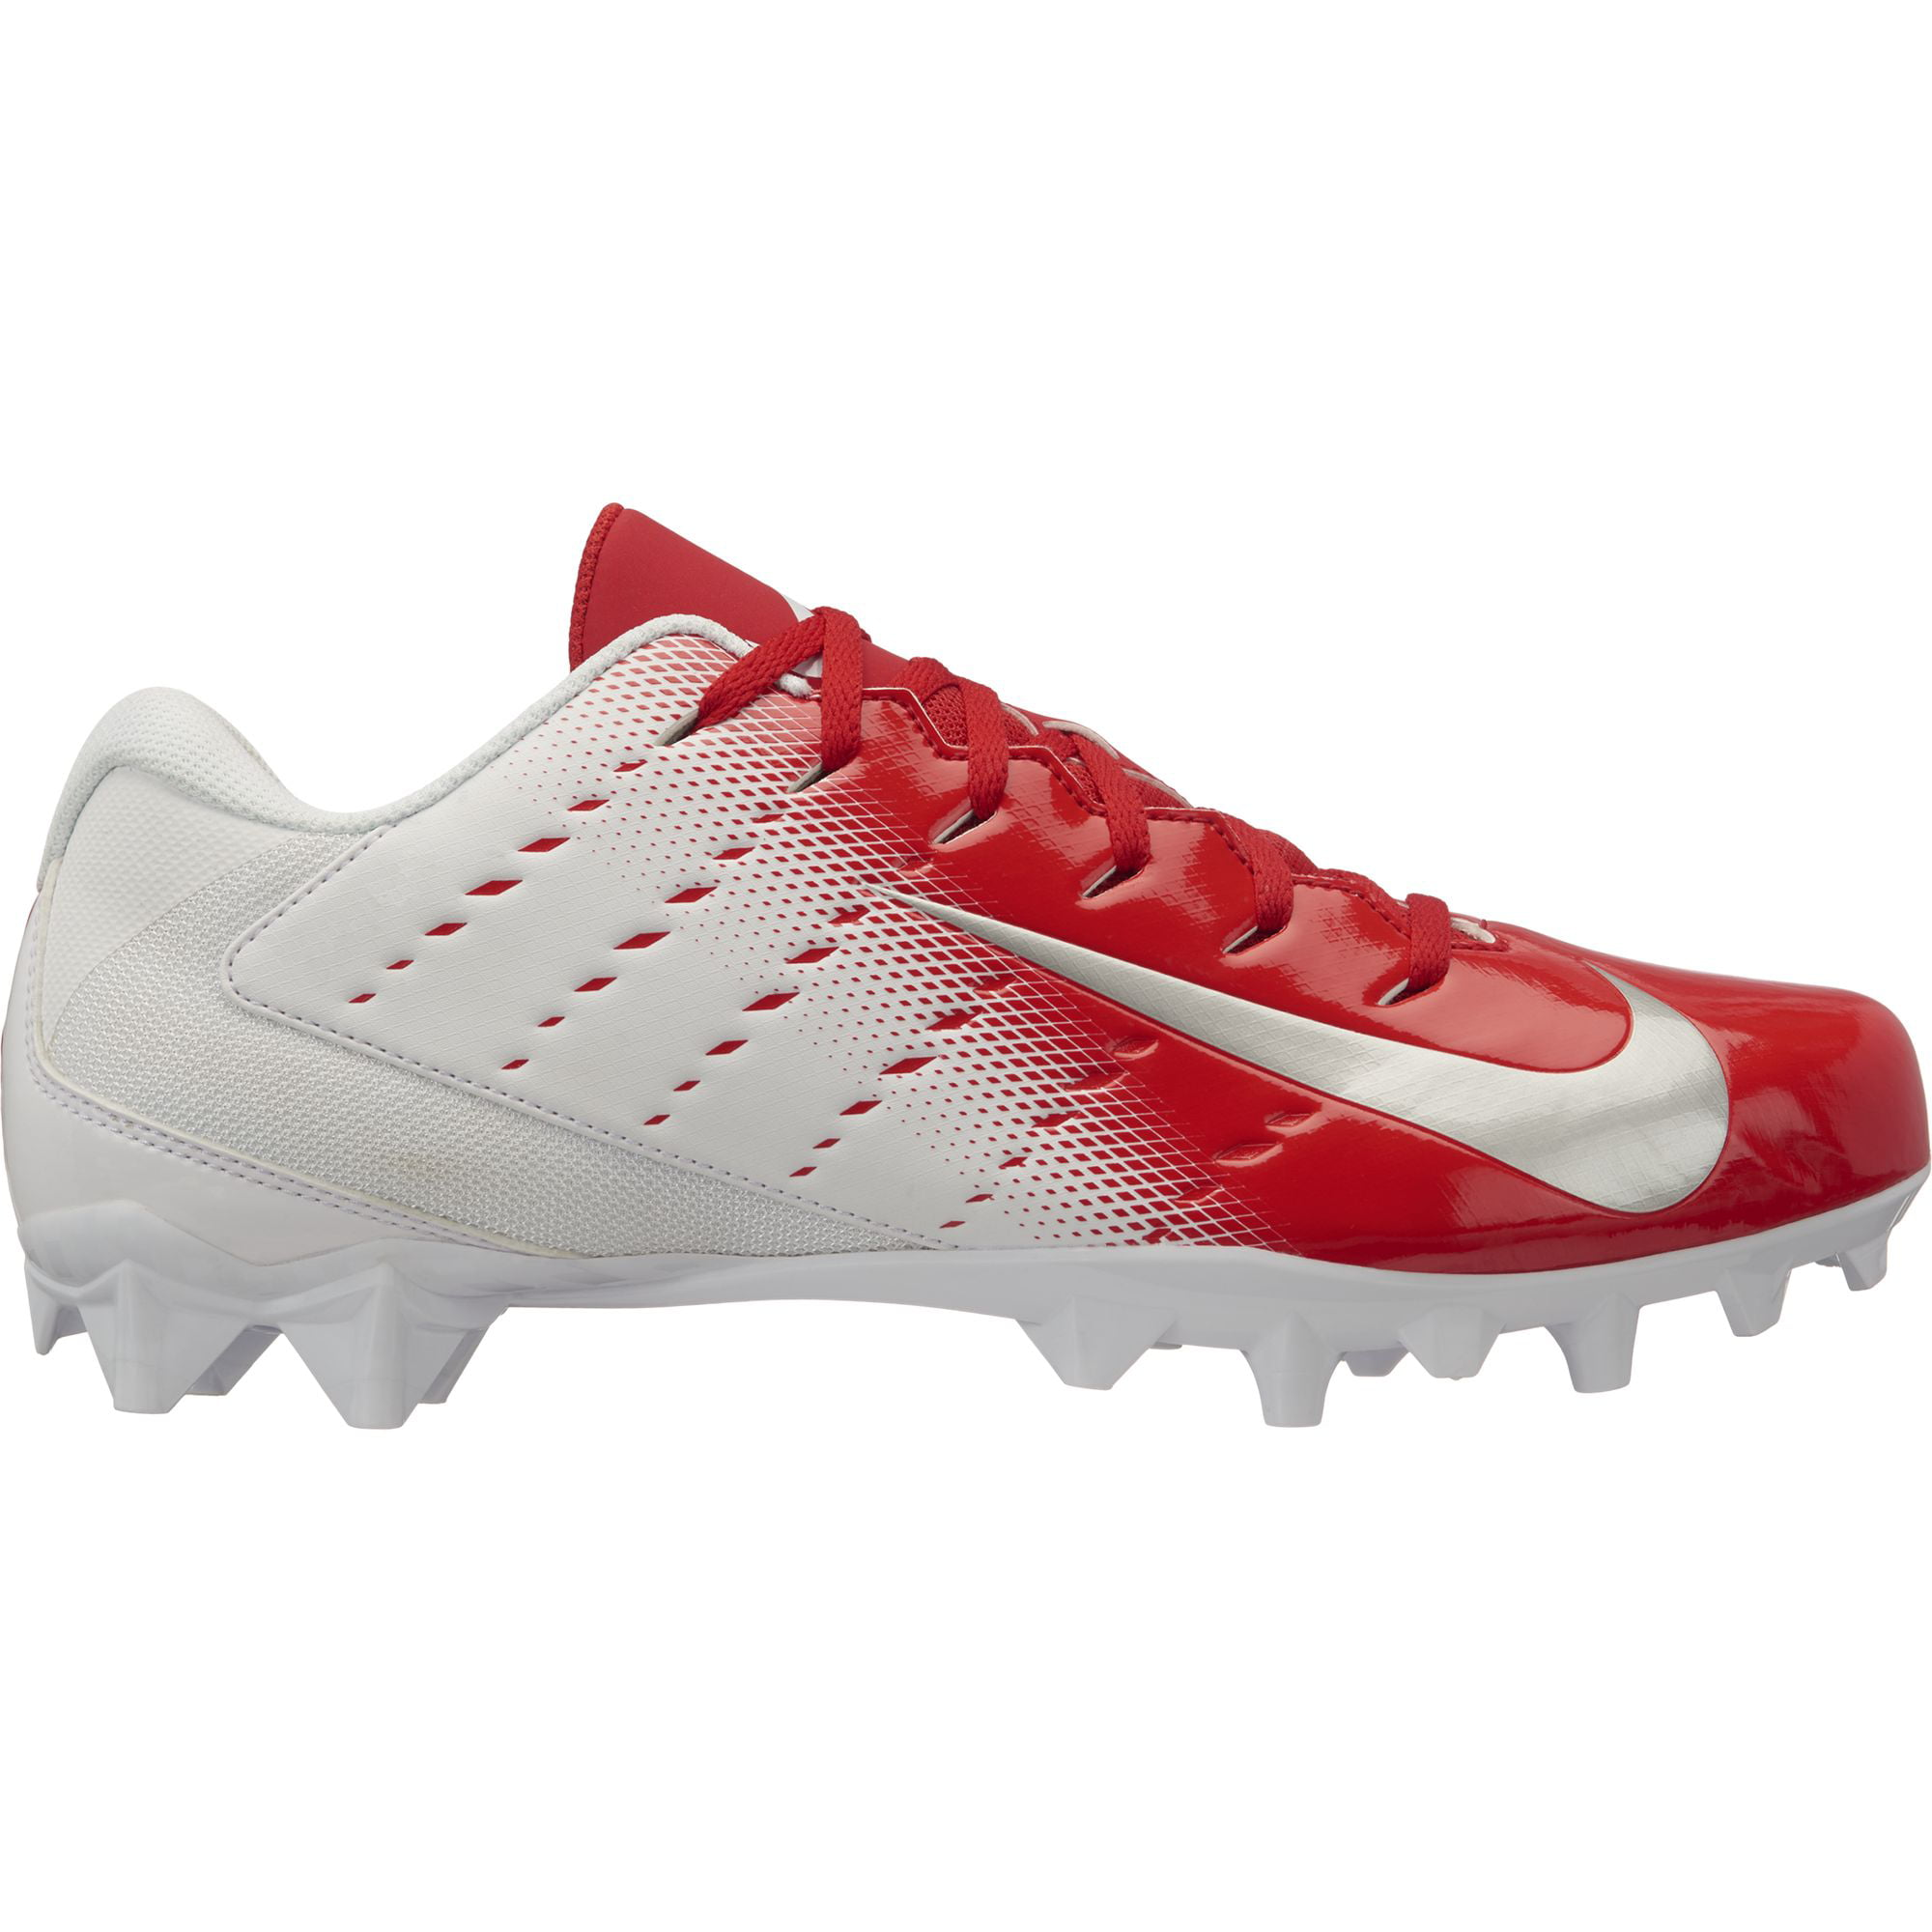 Men S Nike Vapor Untouchable Varsity 3 Td Football Cleat Walmart Com Walmart Com